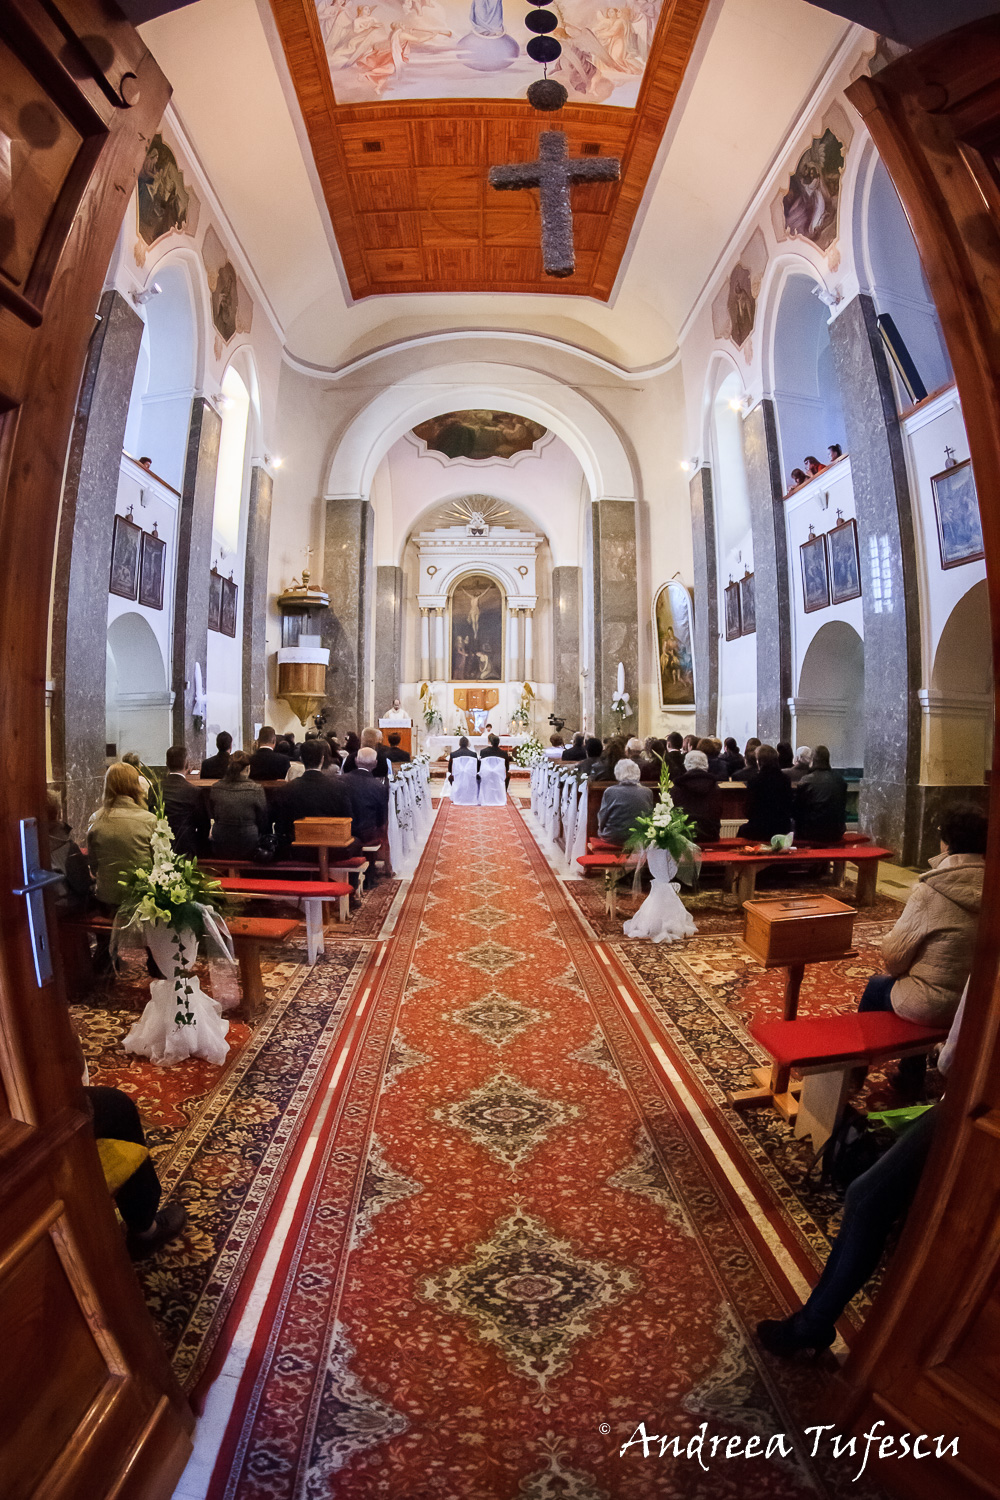 Wedding and Engagement Photography by Andreea Tufescu - Z & A Wedding - Traditional Church Ceremony and Reception